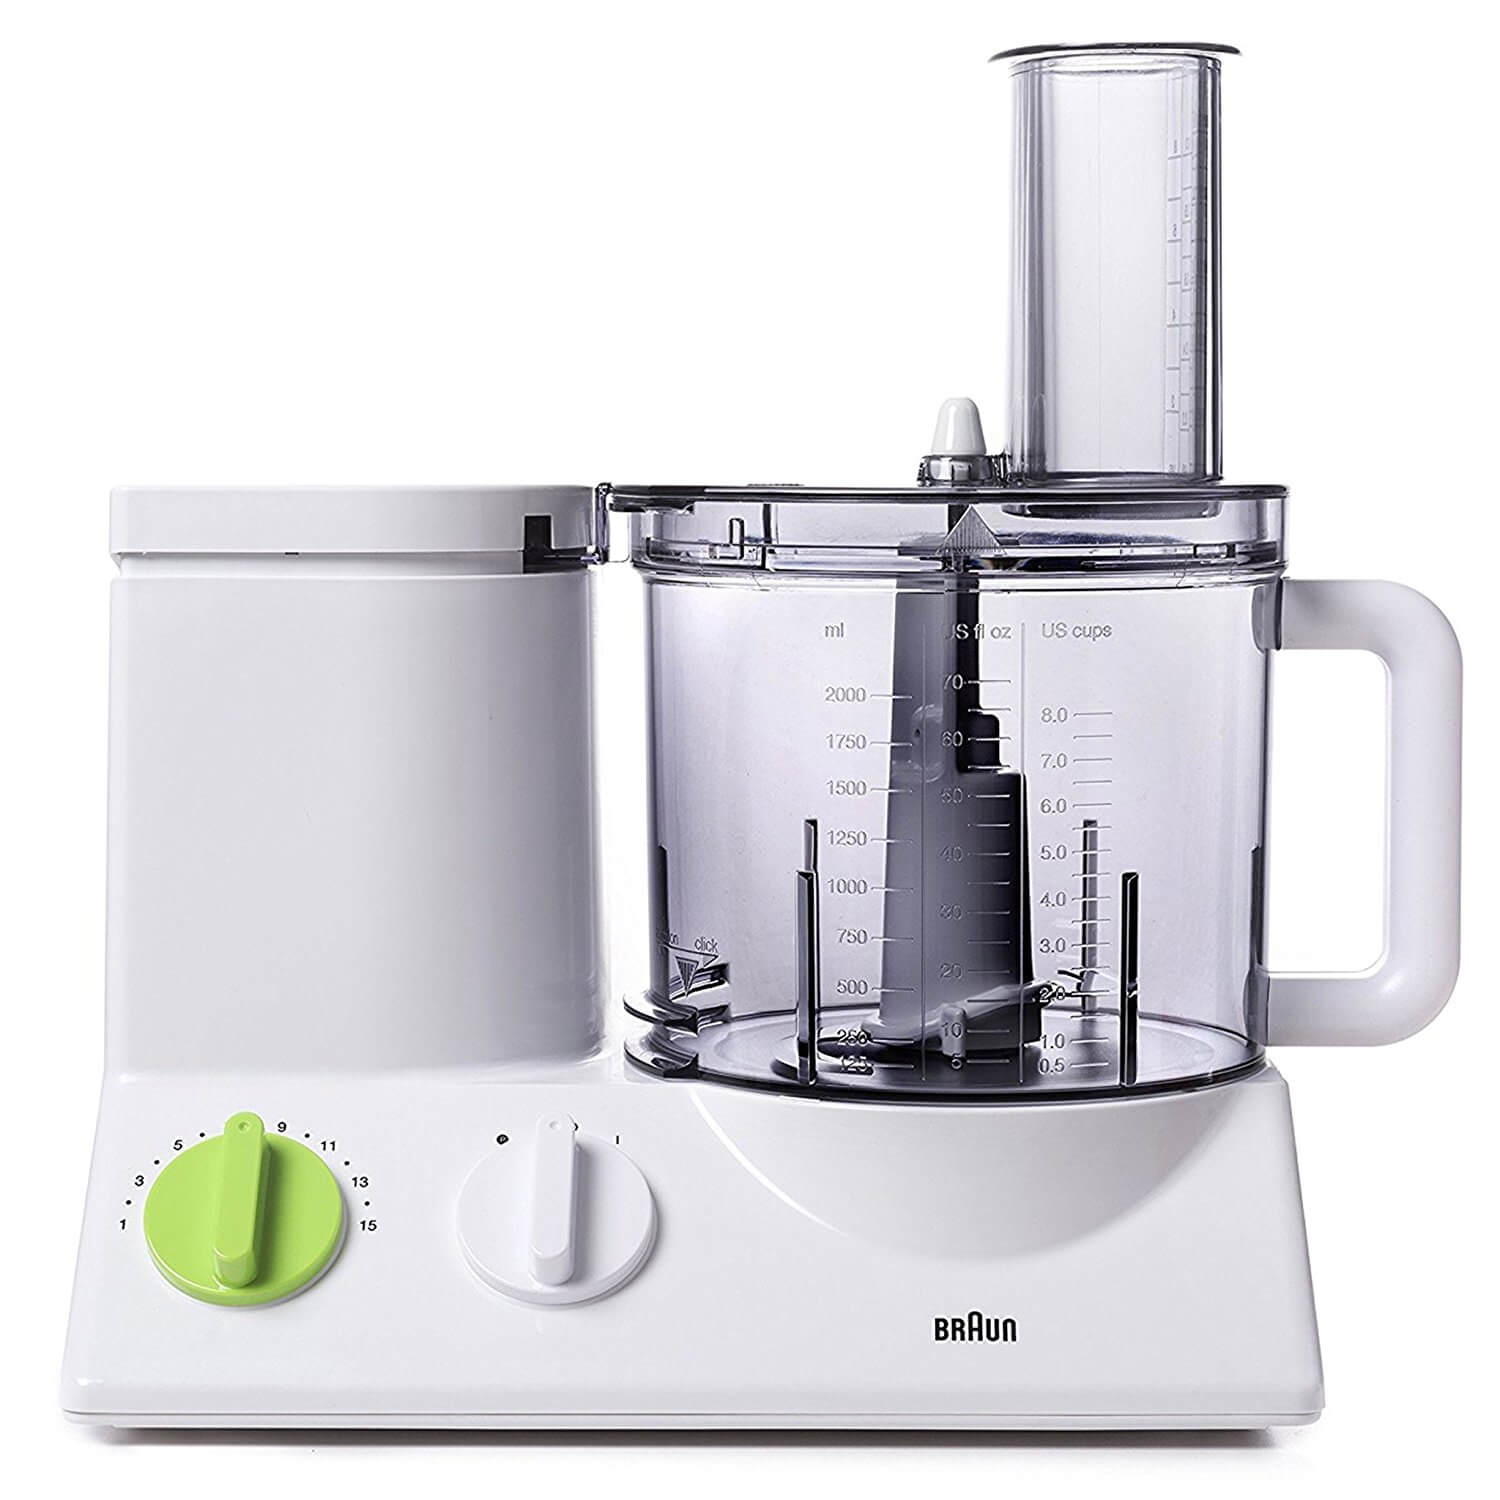 Braun FP3020 12 Cup Food Processor